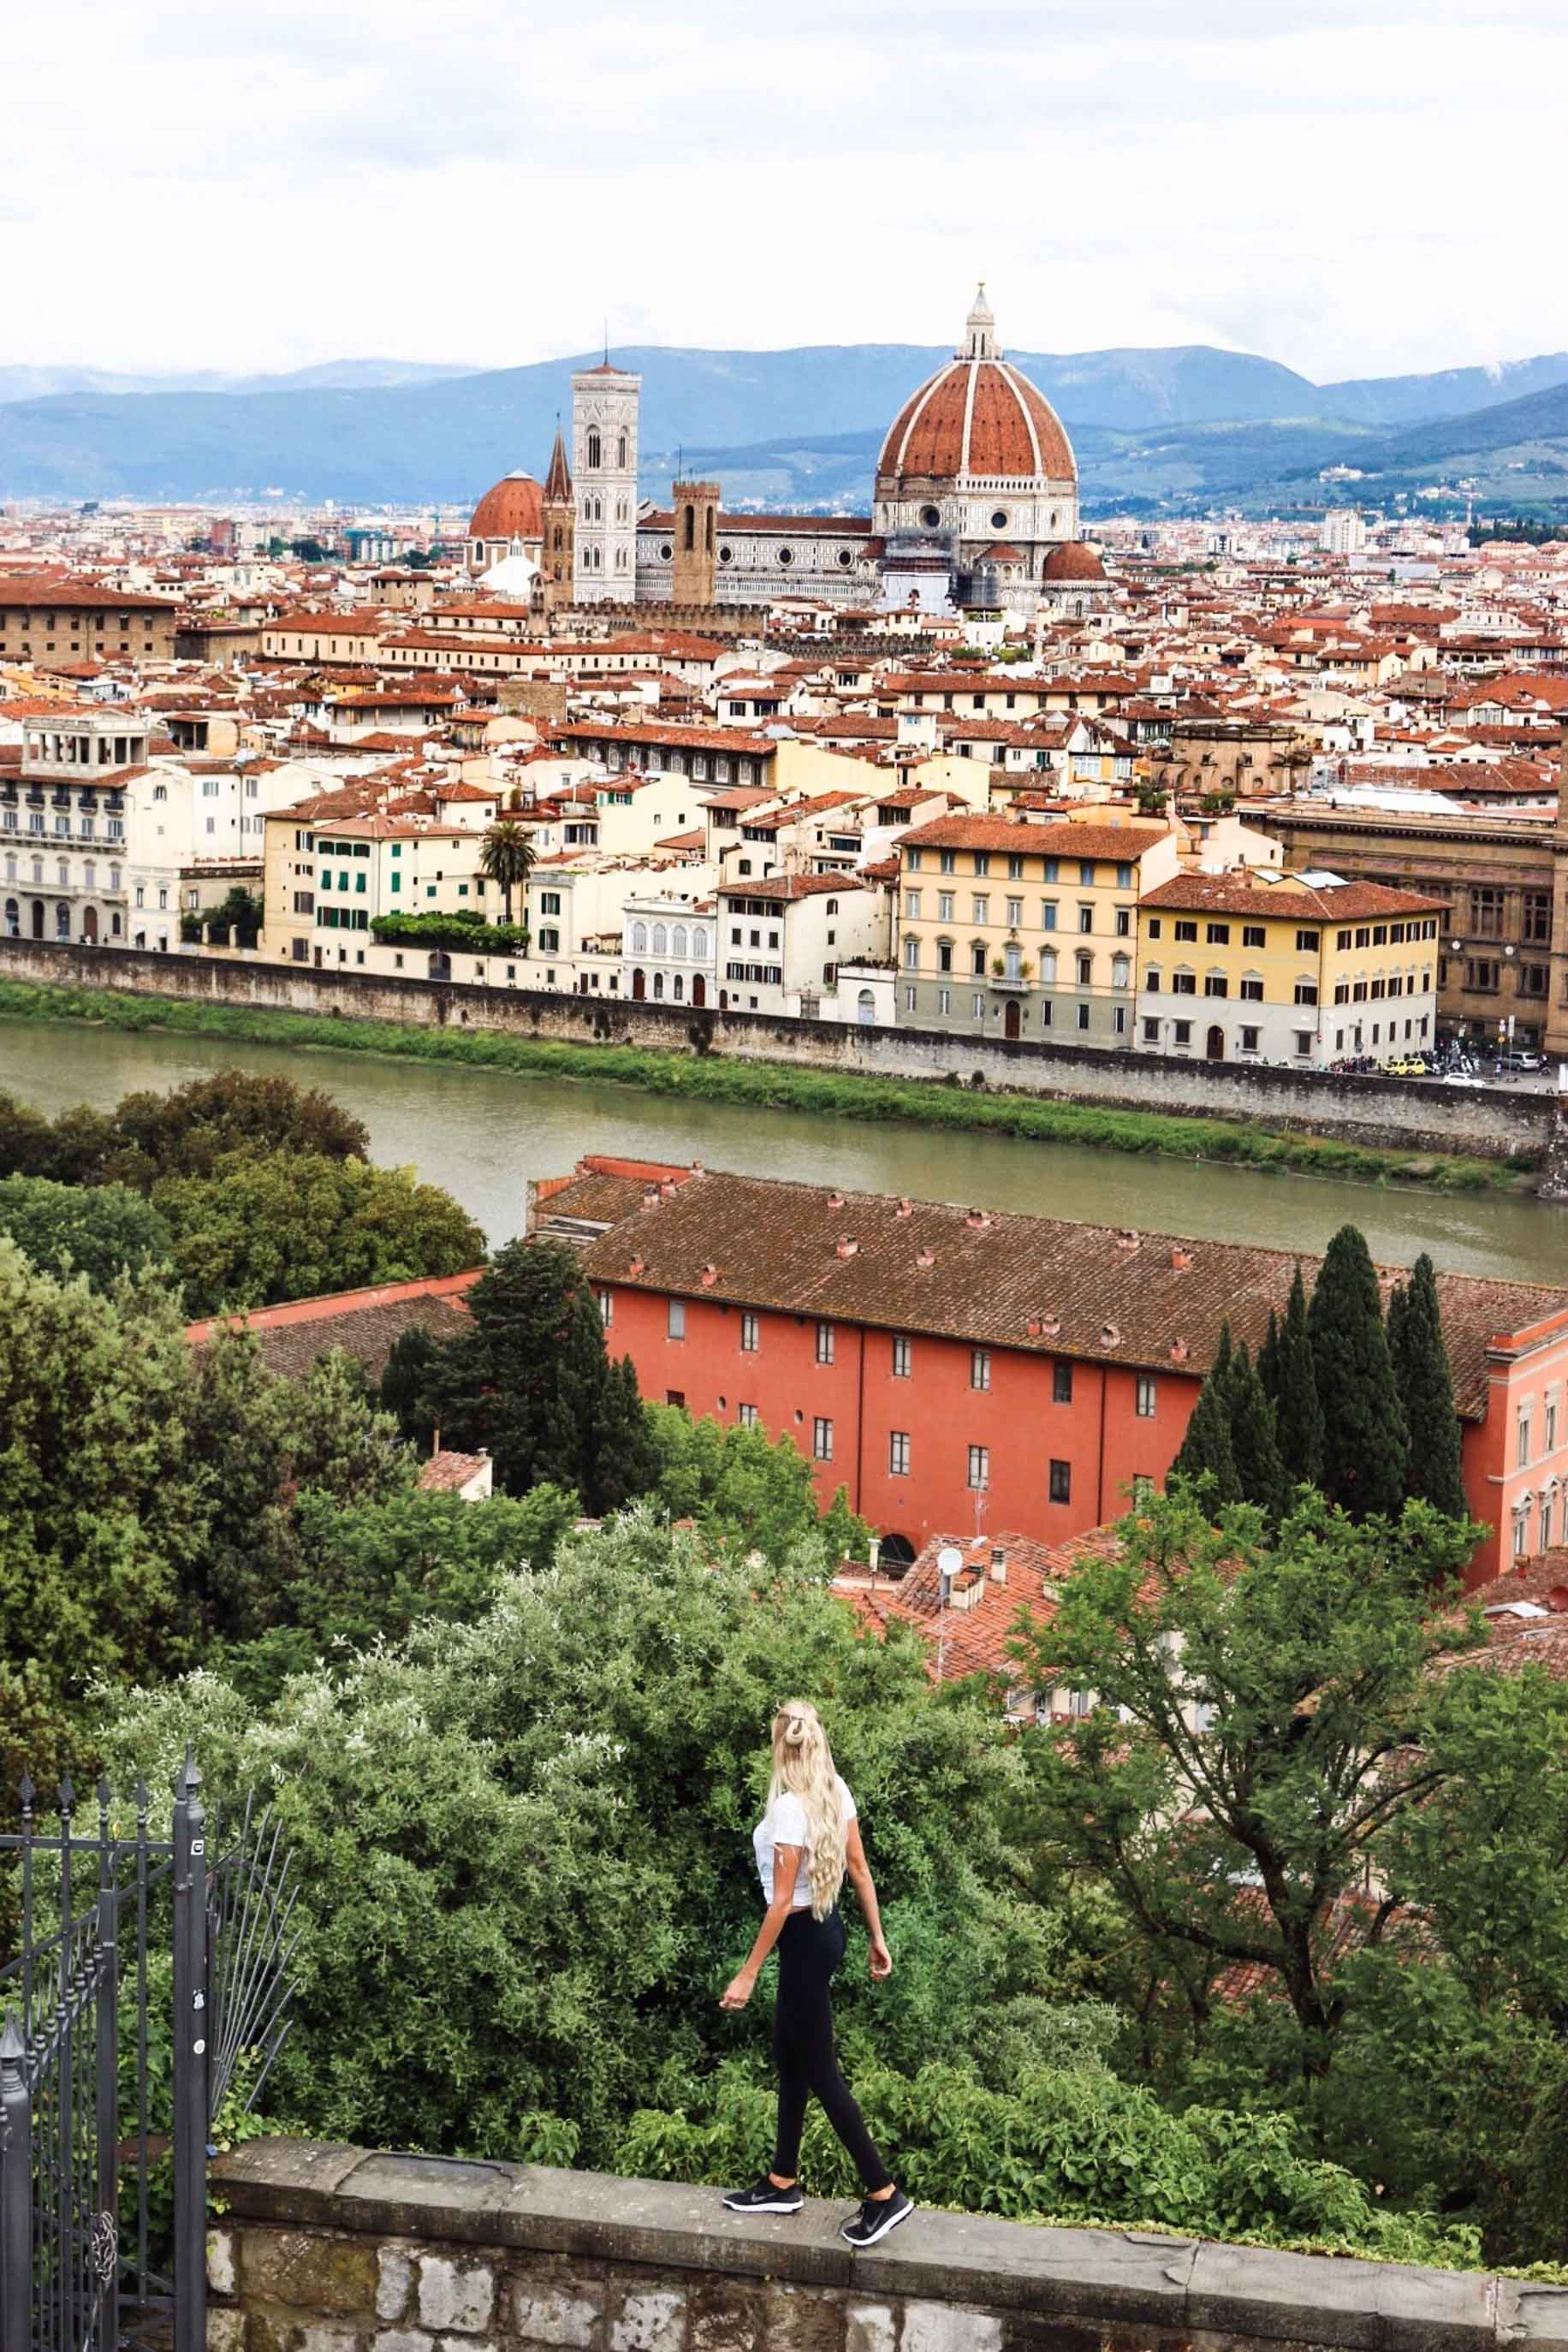 couples coordinates italy wedding destinations alex at piazzale michelangelo florence italy with view of duomo